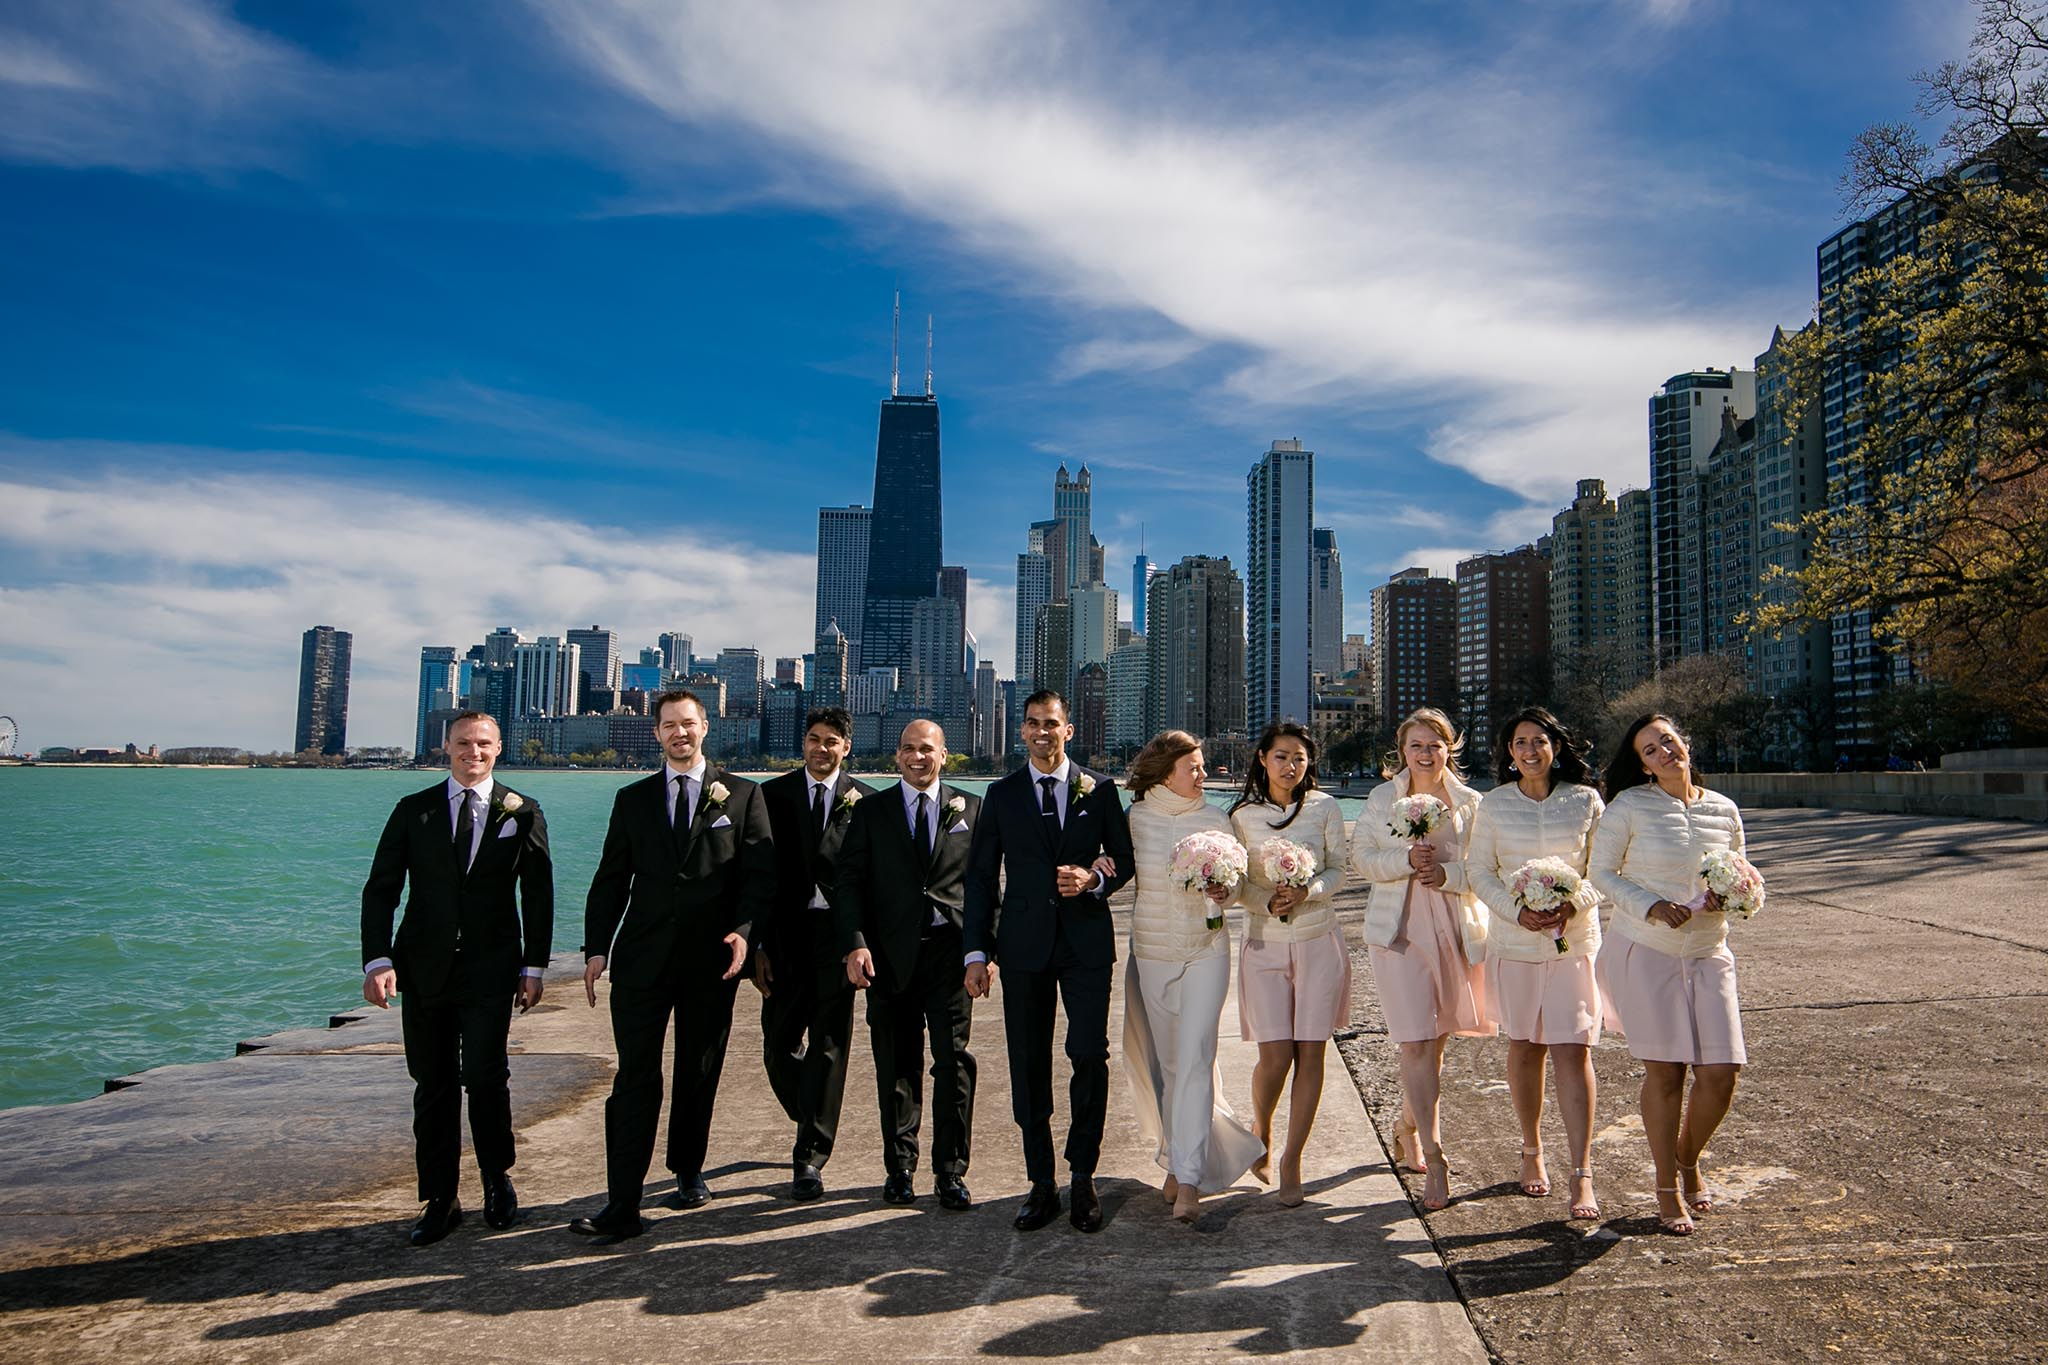 Chicago history museum wedding